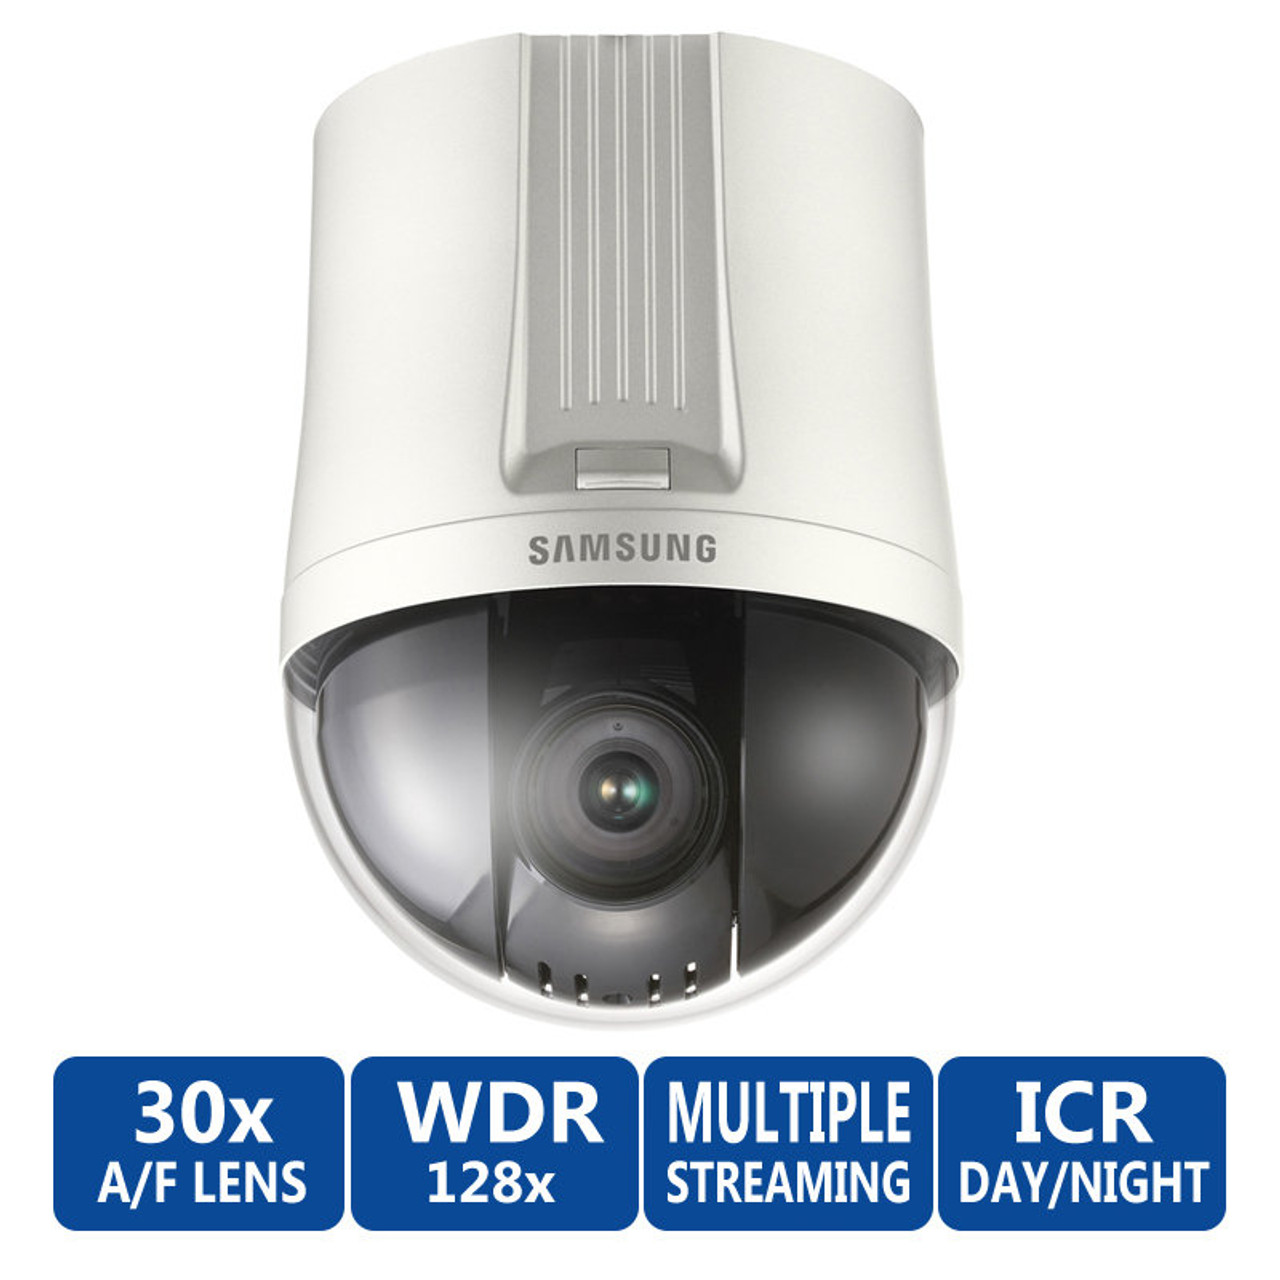 SAMSUNG SNP-3302 NETWORK CAMERA WINDOWS 7 X64 TREIBER